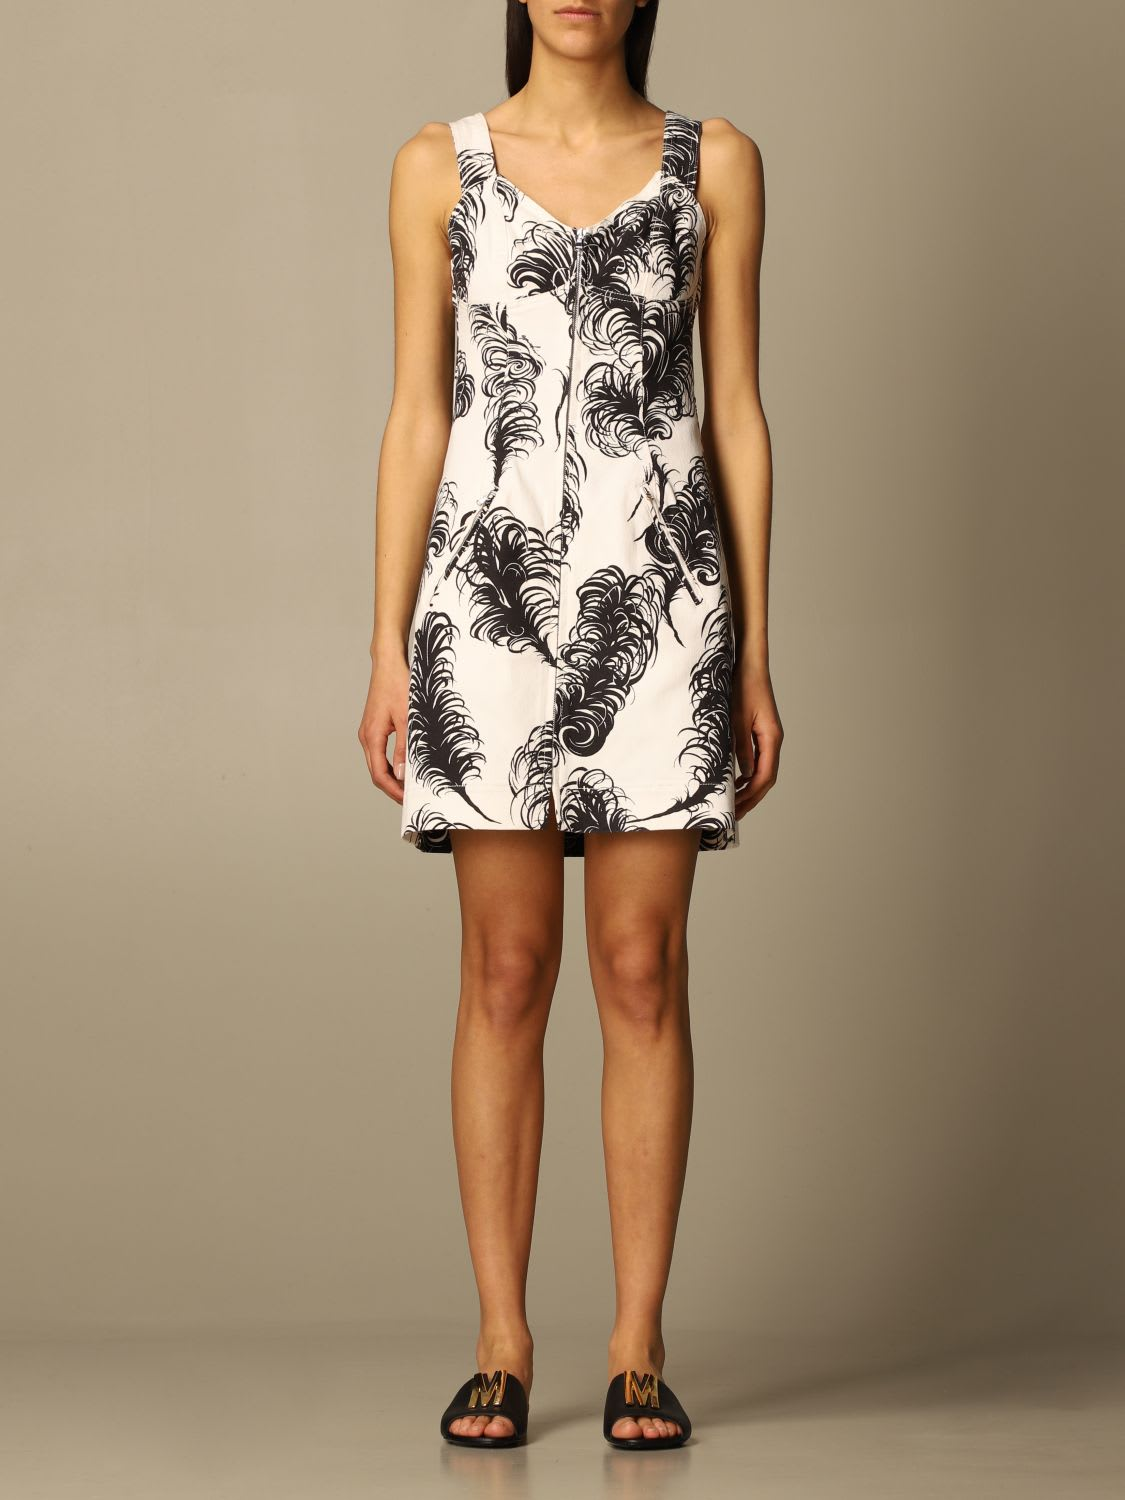 Moschino Couture Dress Moschino Couture Dress With Feather Print